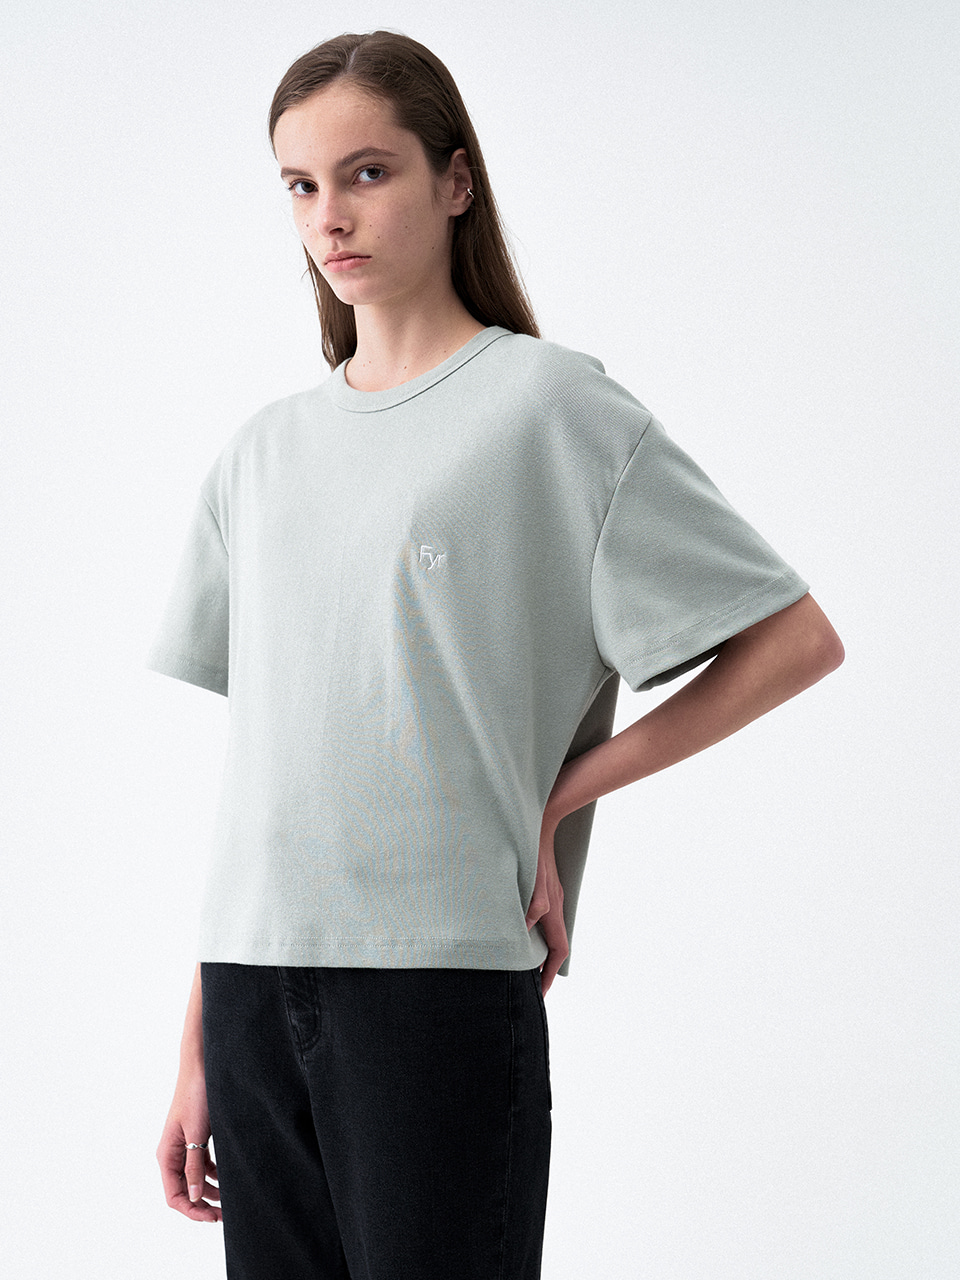 Foyer Signiture Tee Mint grey